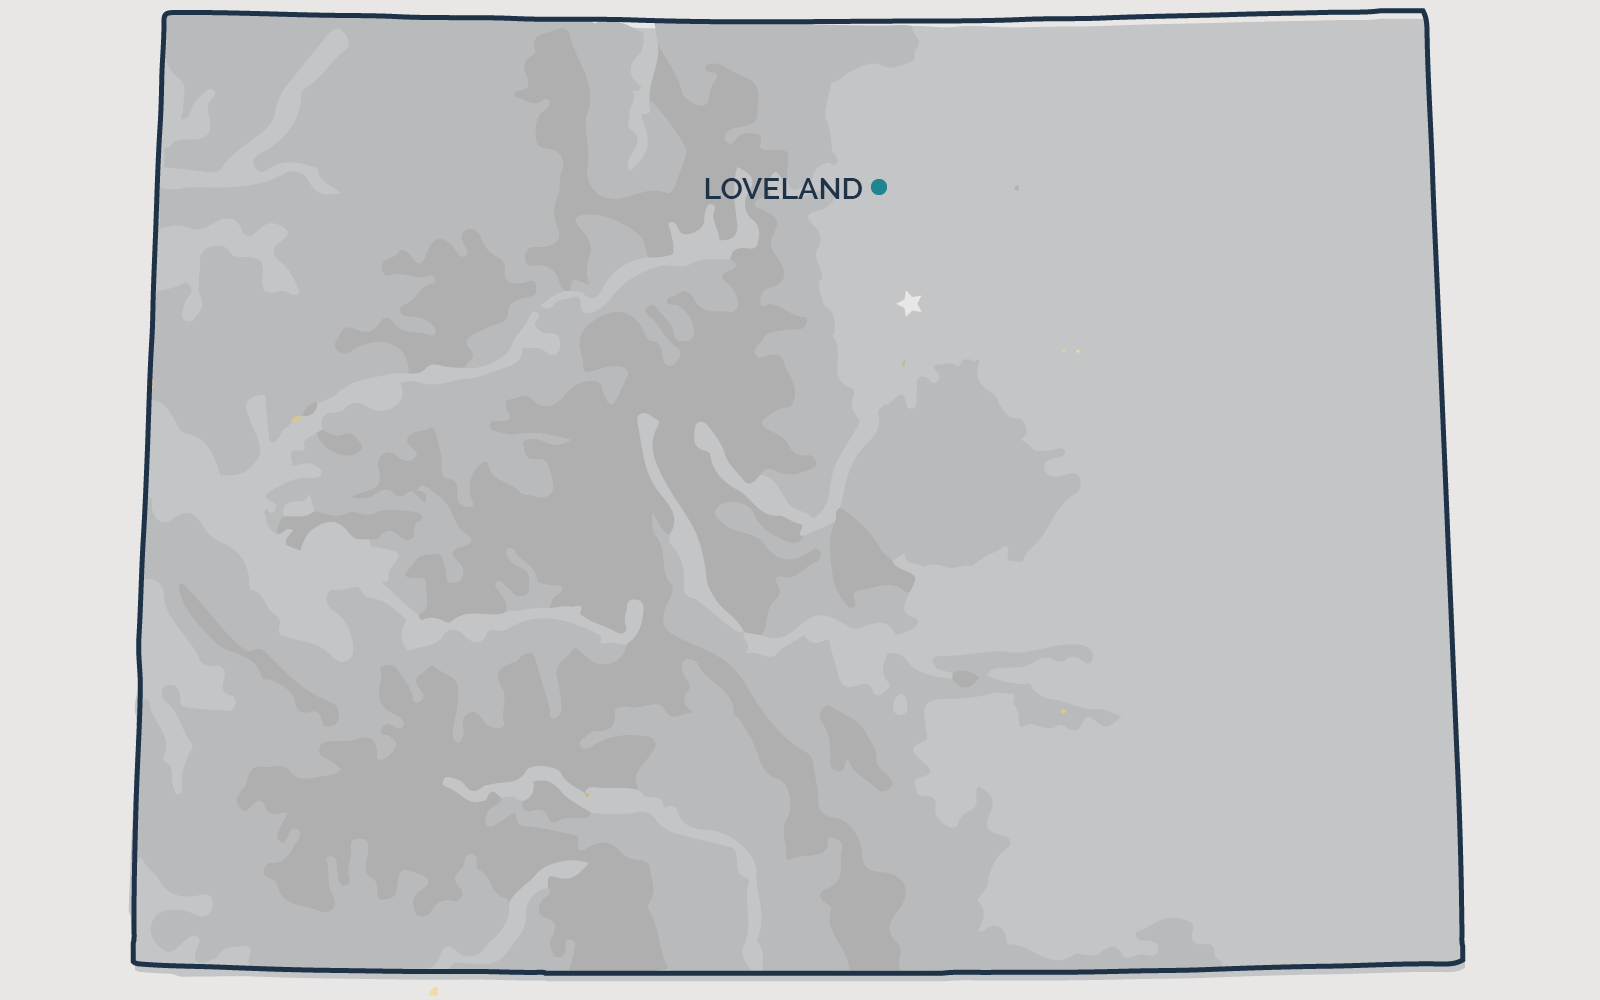 LOVELAND, Colorado - Your health and satisfaction are important to us. We are located in Littleton, Colorado and are pleased to provide our professional, honest, and affordable radon testing and mitigation services to happy and satisfied customers all along the front range of our beautiful State of Colorado.